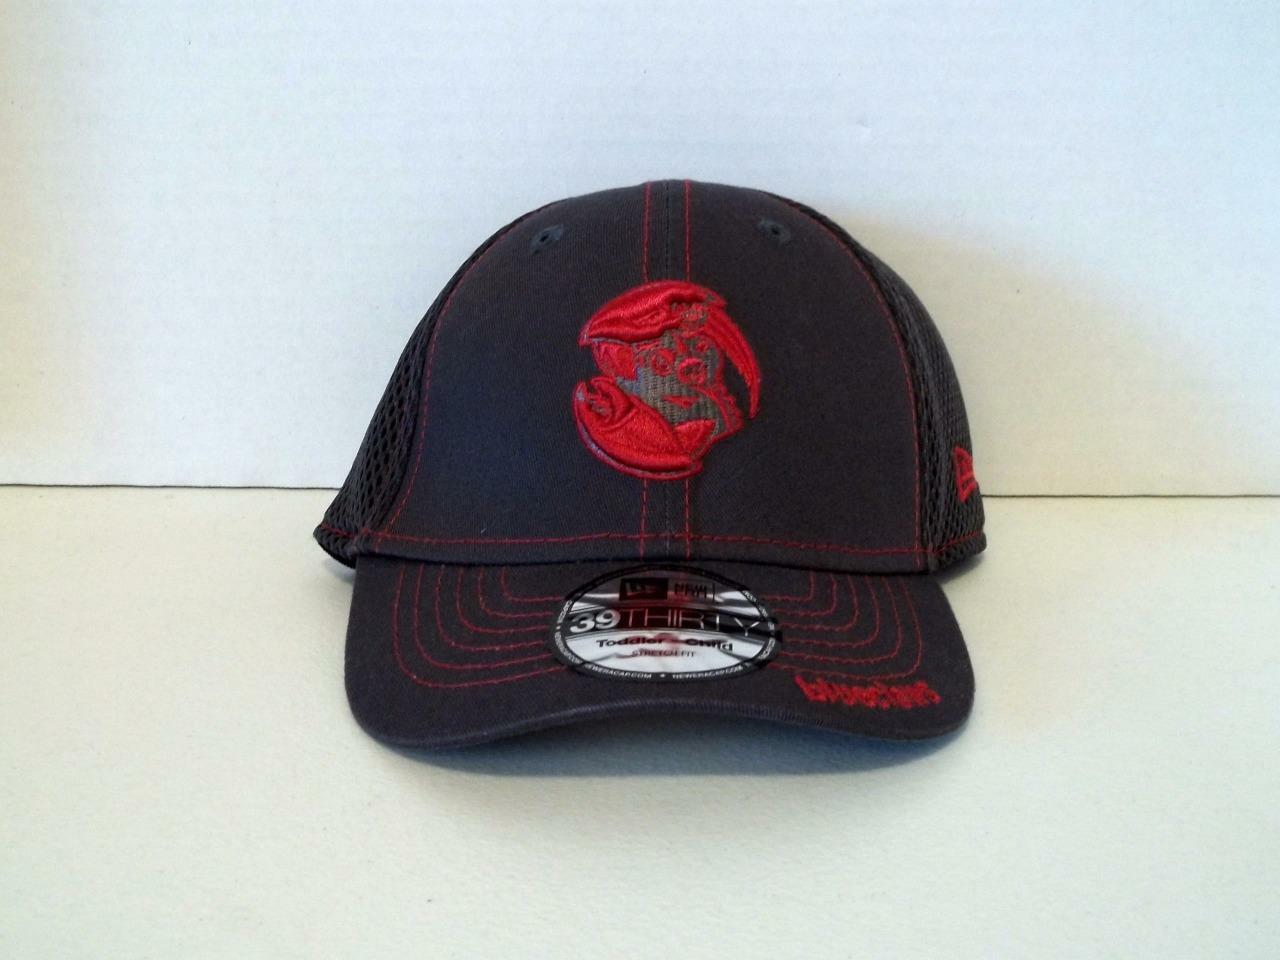 NEW ERA LAKEWOOD BLUECLAWS MiLB HAT 39THIRTY TODDLER CHILD 1 of 3Only 1  available ... 54e5698d4327